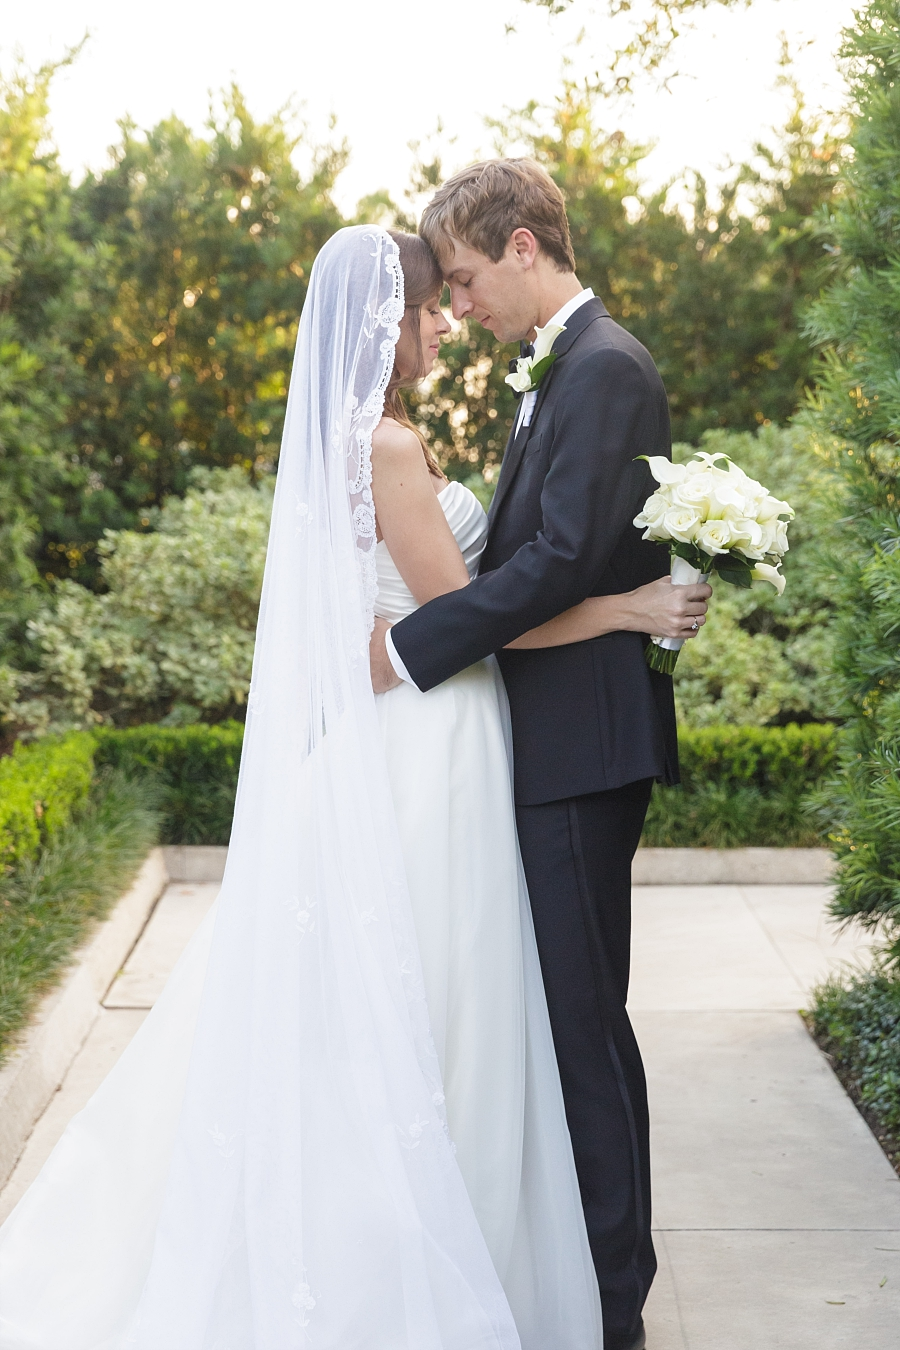 Stacy-Anderson-Photography-McGovern-Centennial-Gardens-Houston-Wedding-Photographer_0055.jpg